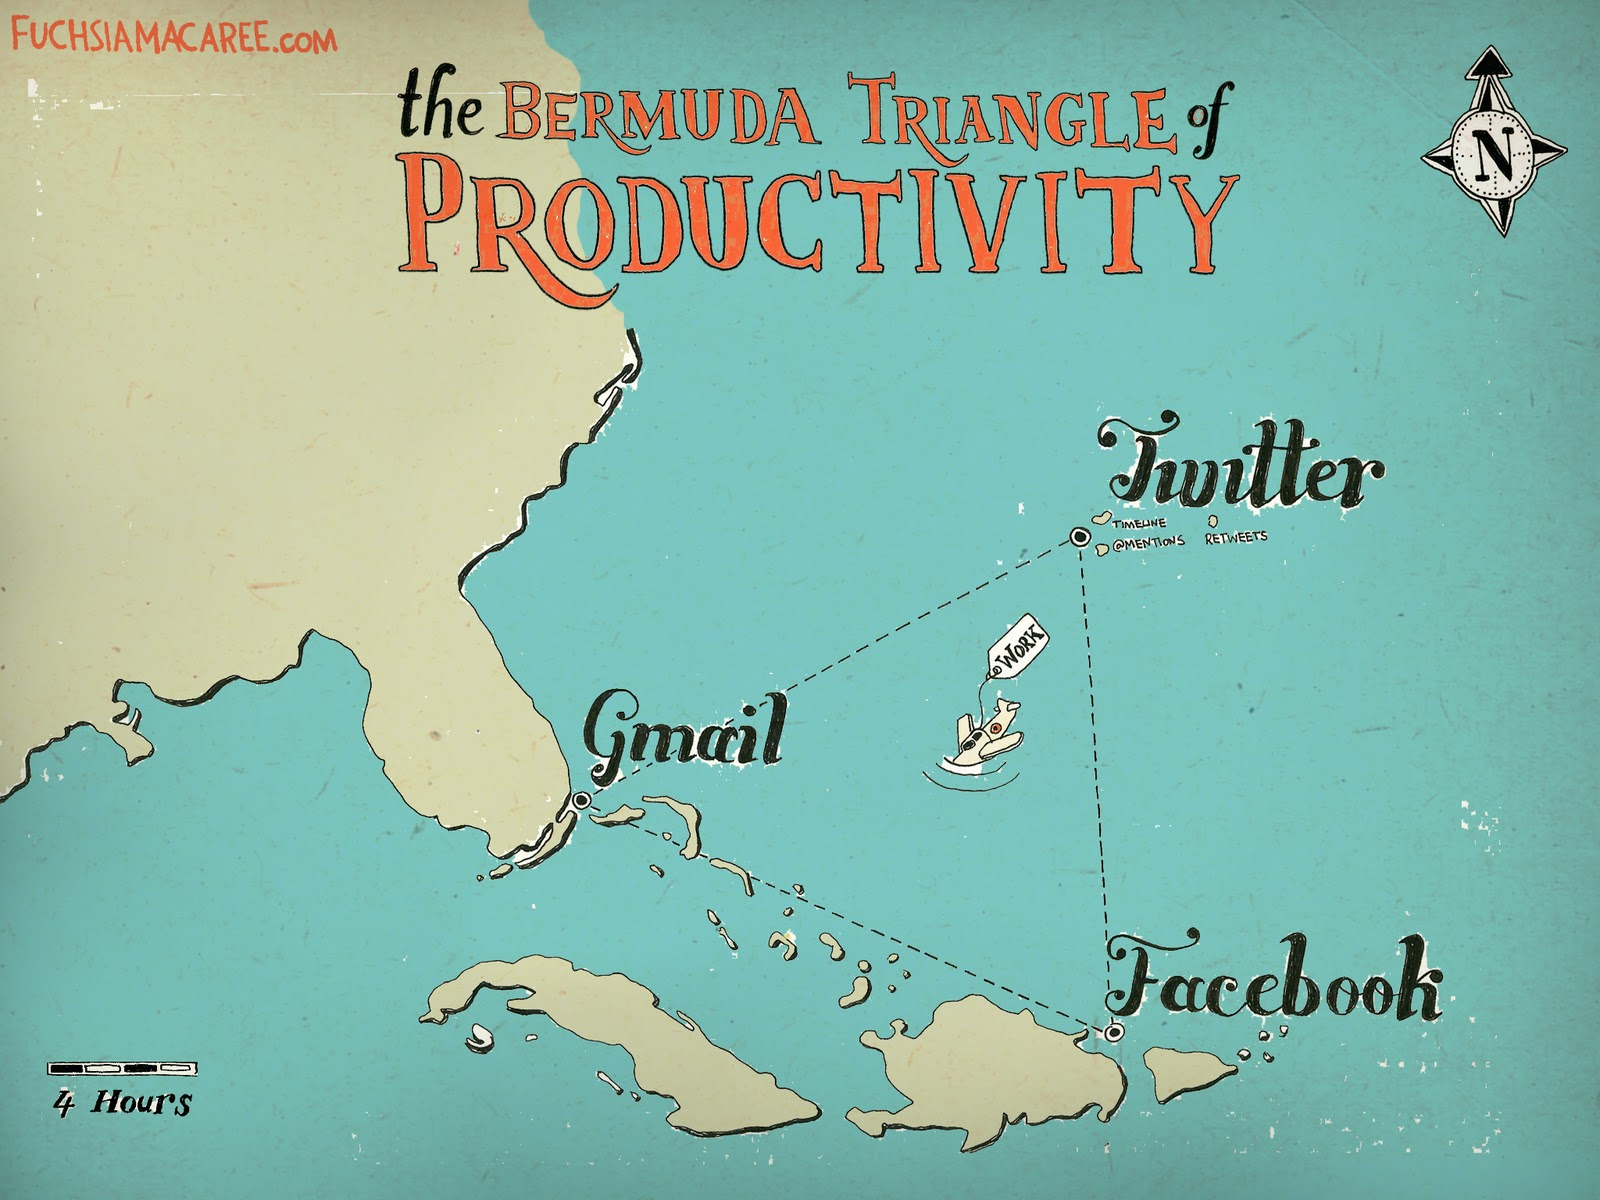 bermuda triangle productivity